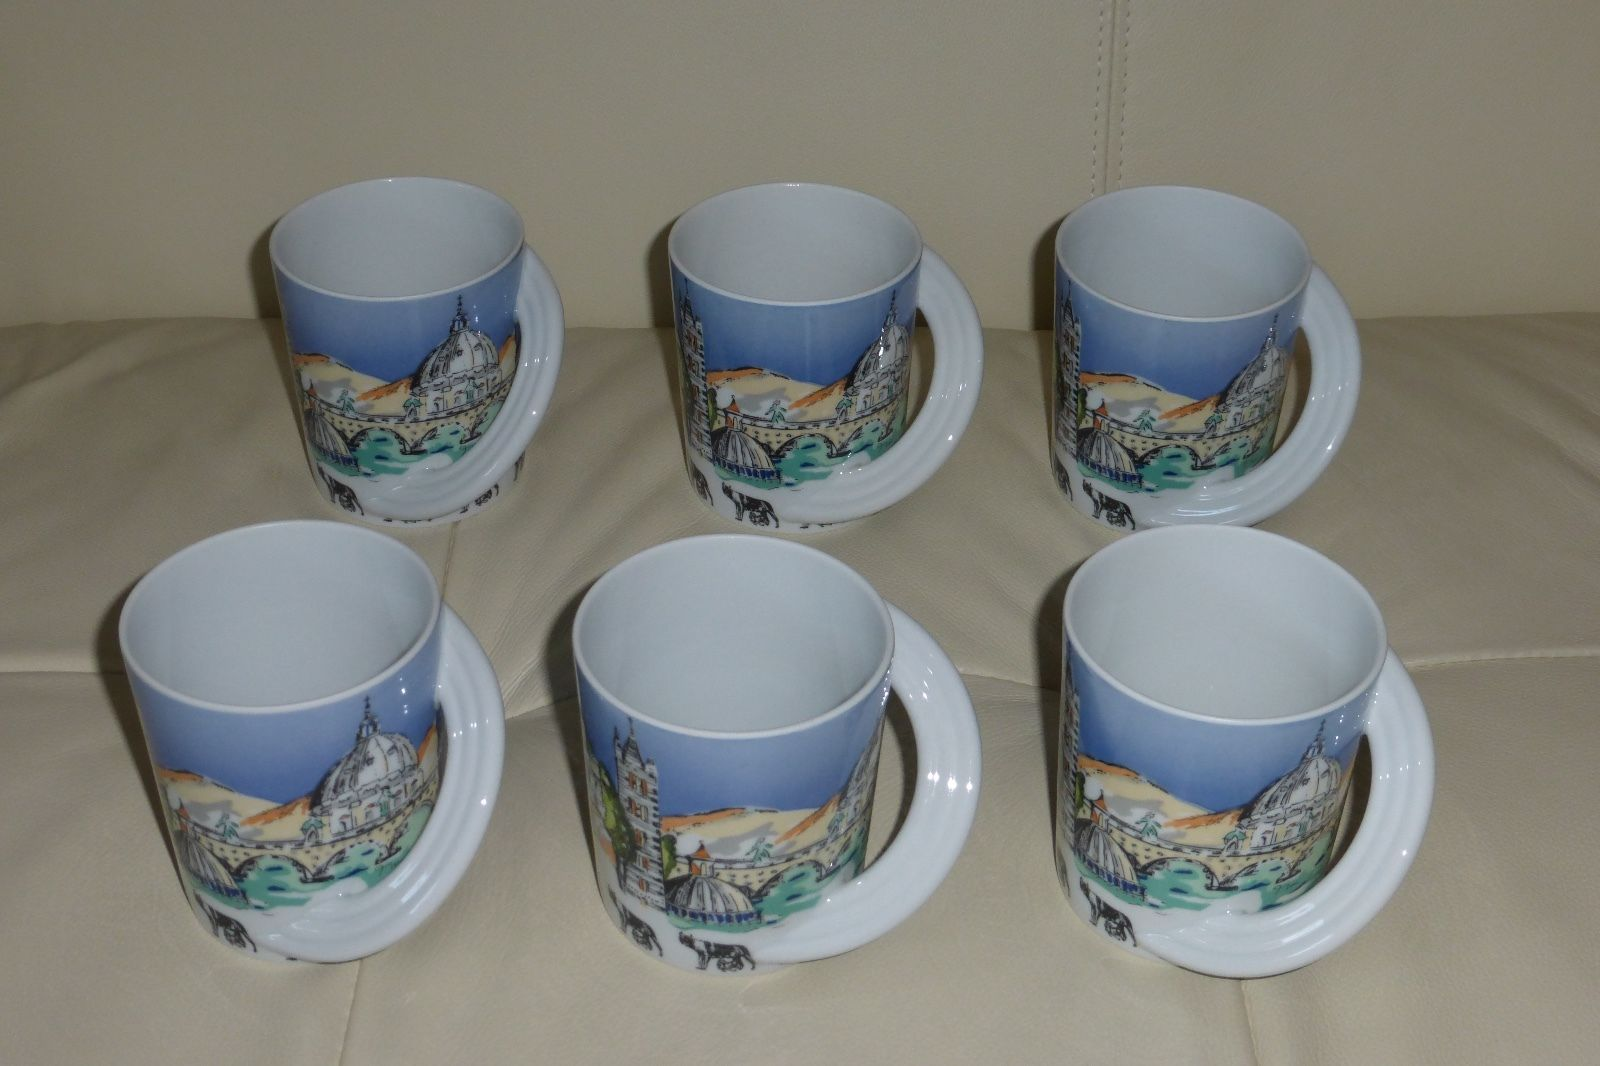 ... 6 Rosenthal City Cup Studio-Line Rome Designed by Johann Van Loon & 6 Rosenthal City Cup Studio-Line Rome and 33 similar items